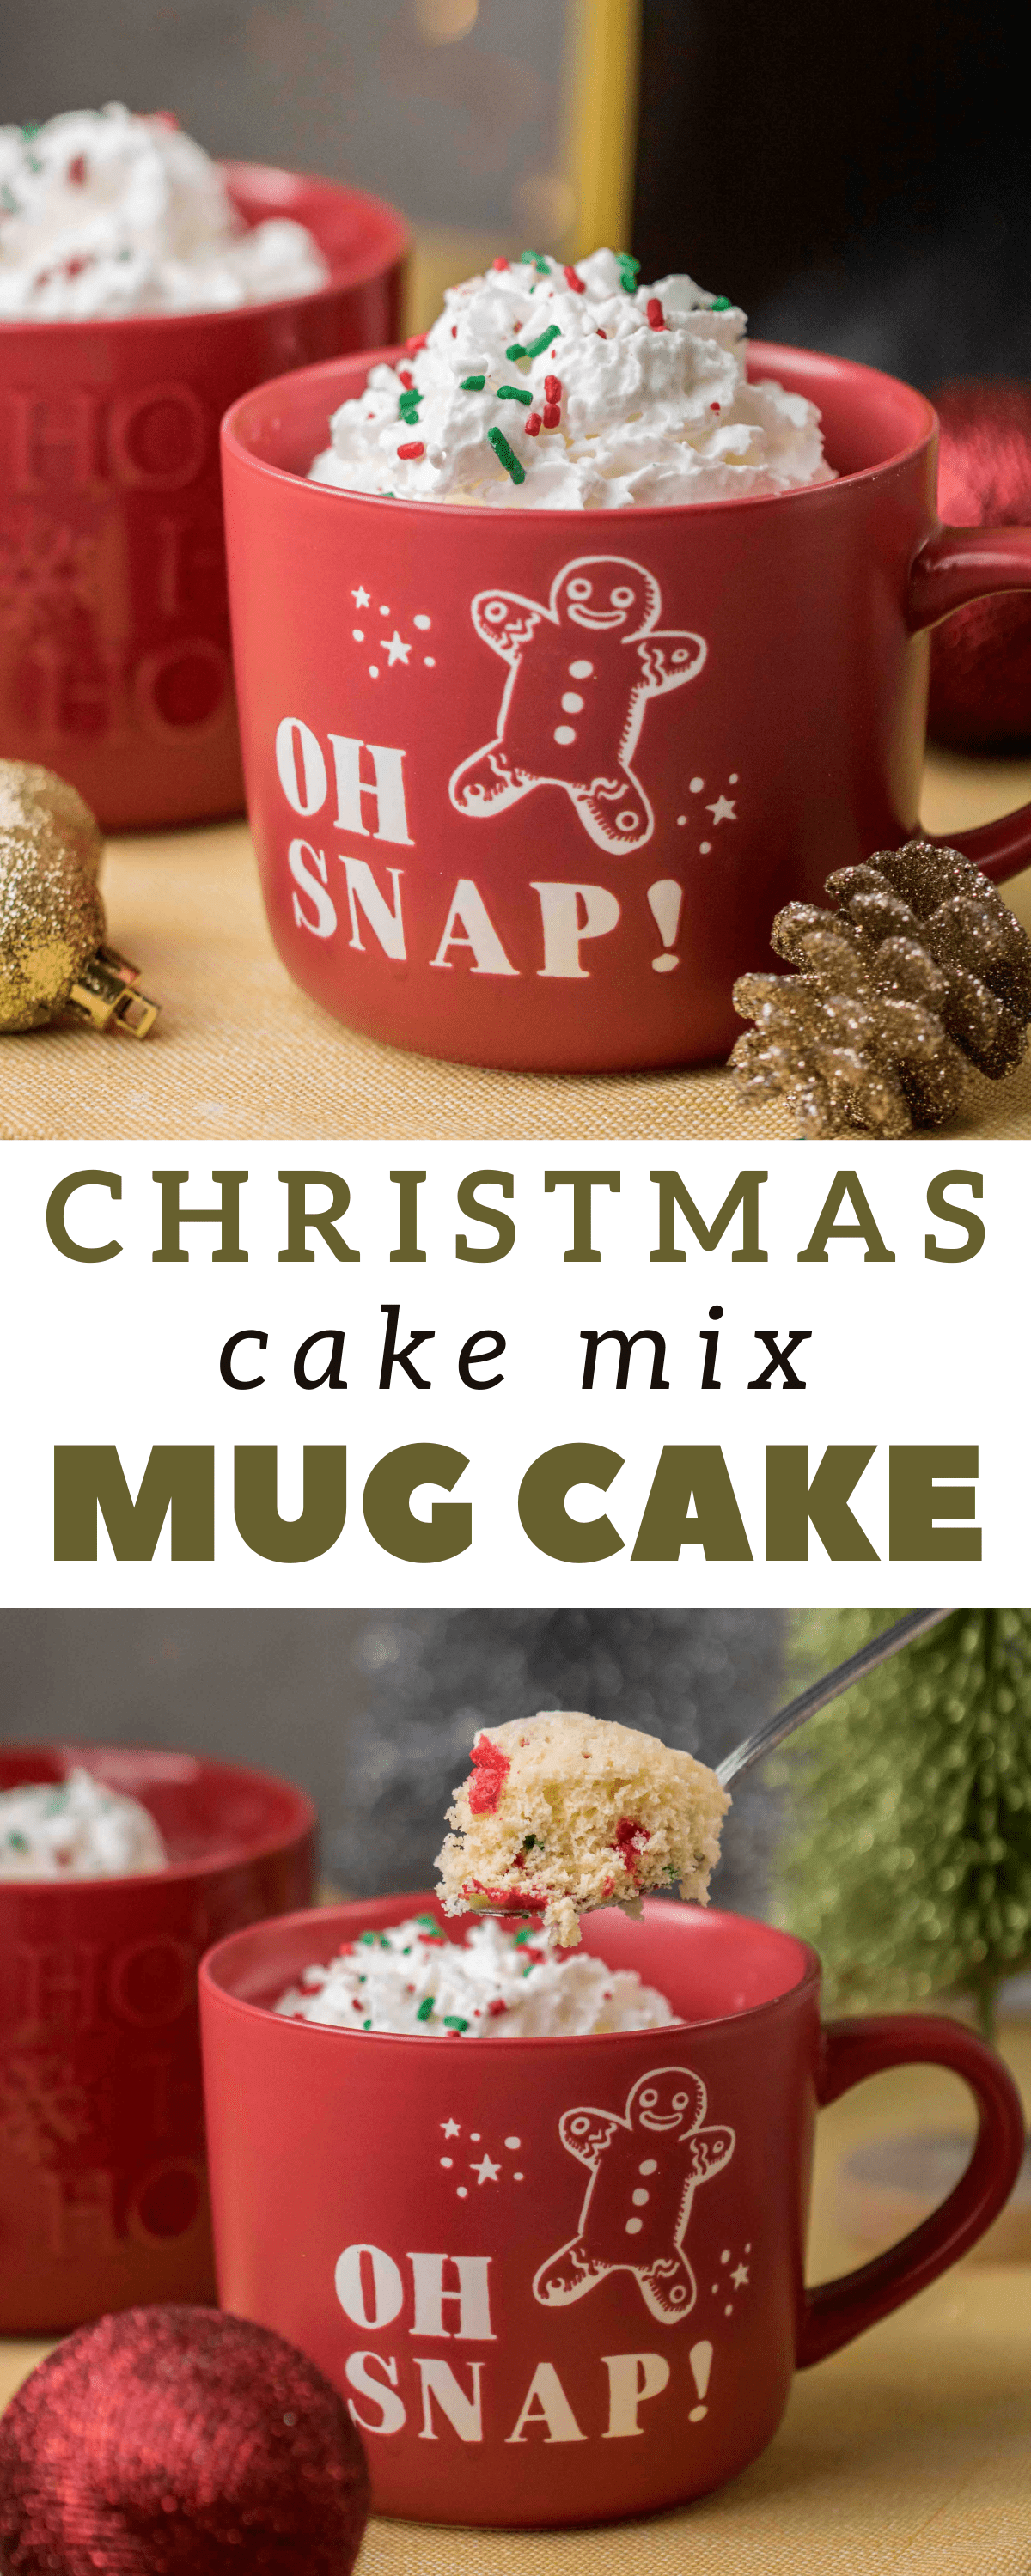 Easy Festive Christmas Cake Mix Mug Cake Lifestyle Of A Foodie